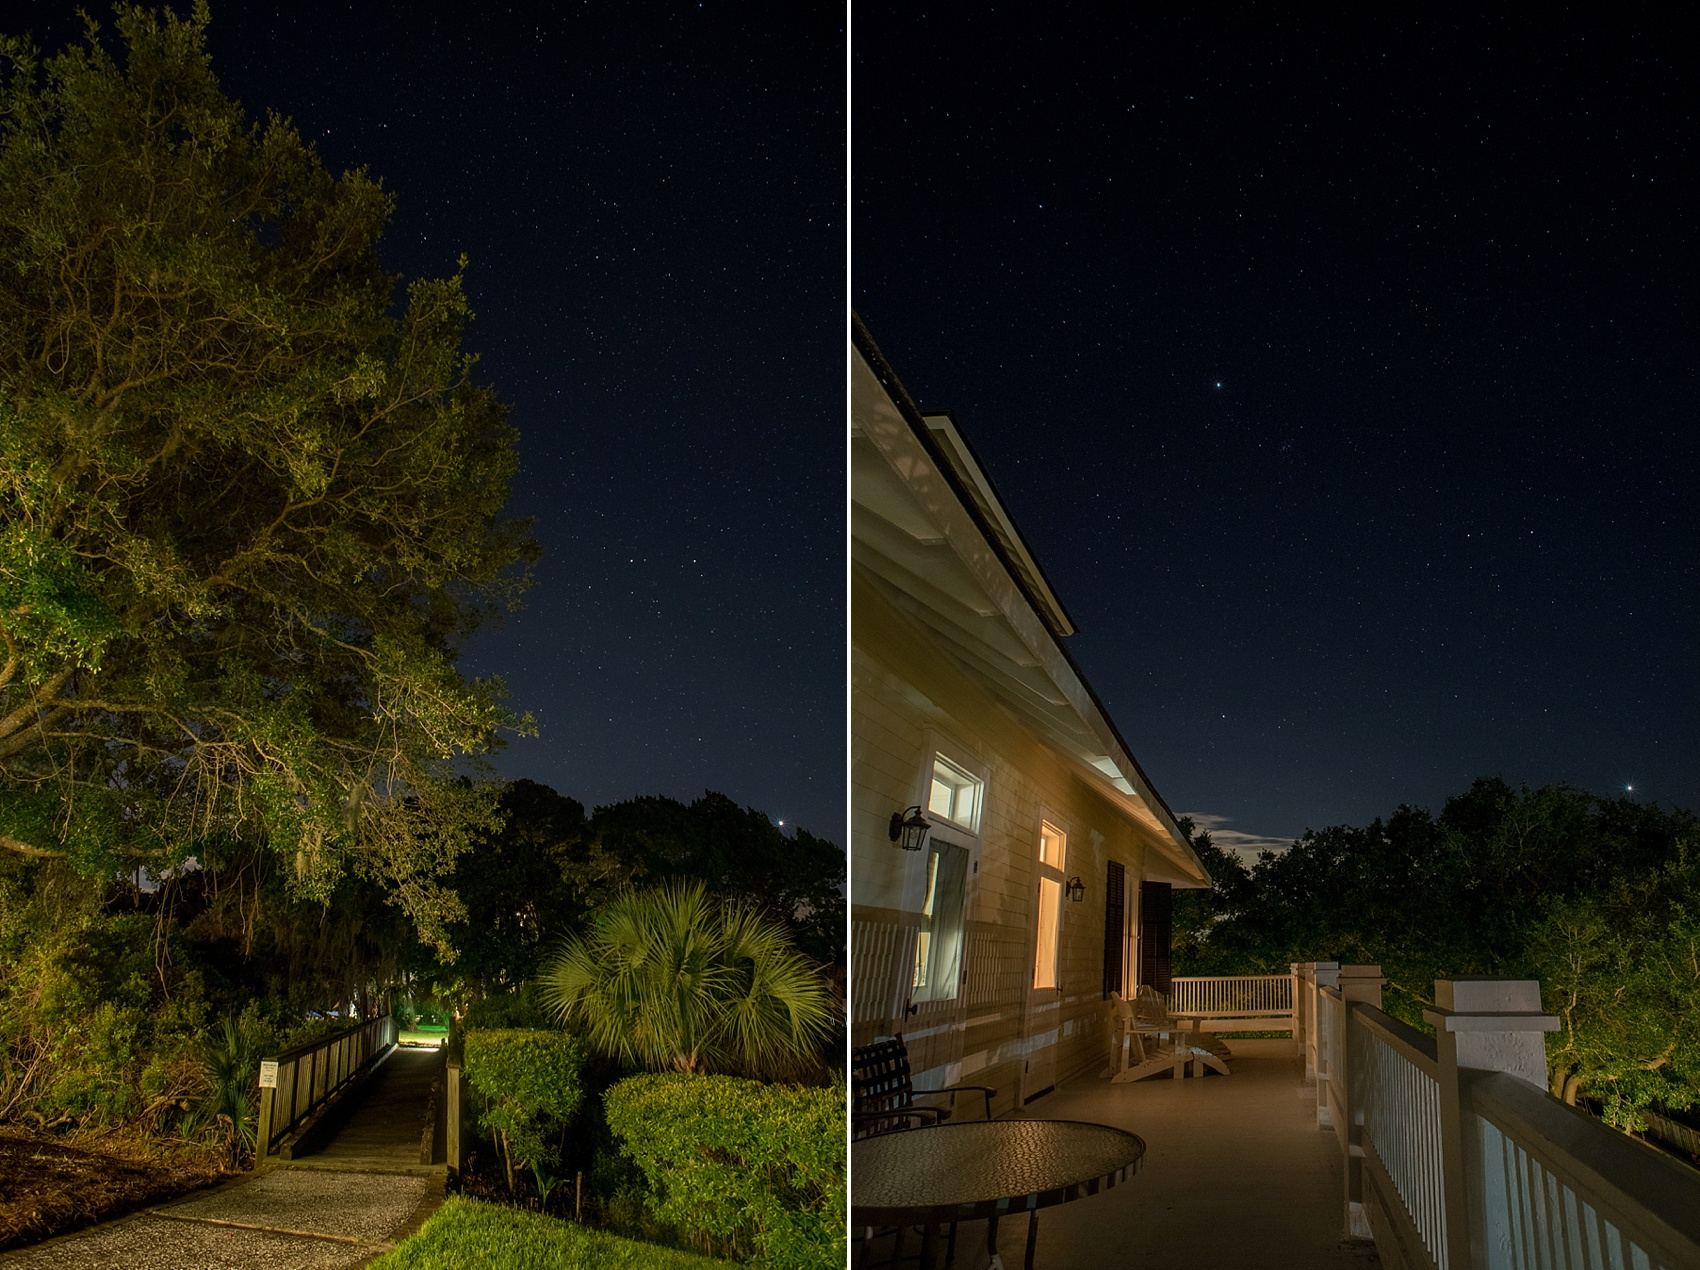 Night photography with starry skies at a wedding at Haig Point in South Carolina, off the coast of Hilton Head. Photos by Mikkel Paige Photography.